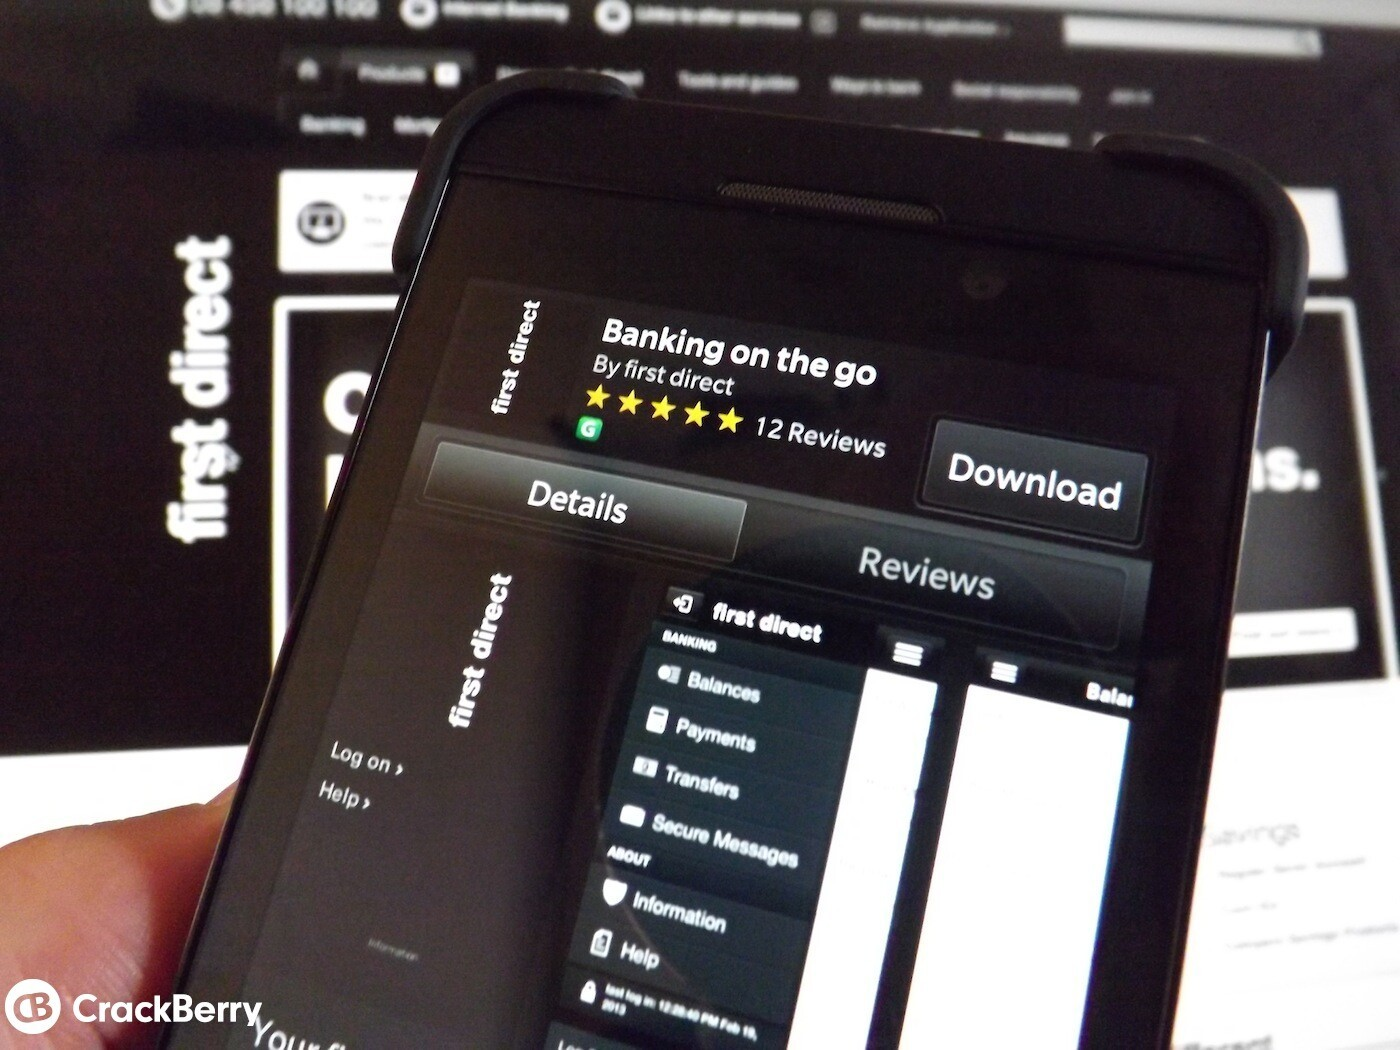 First Direct for BlackBerry 10